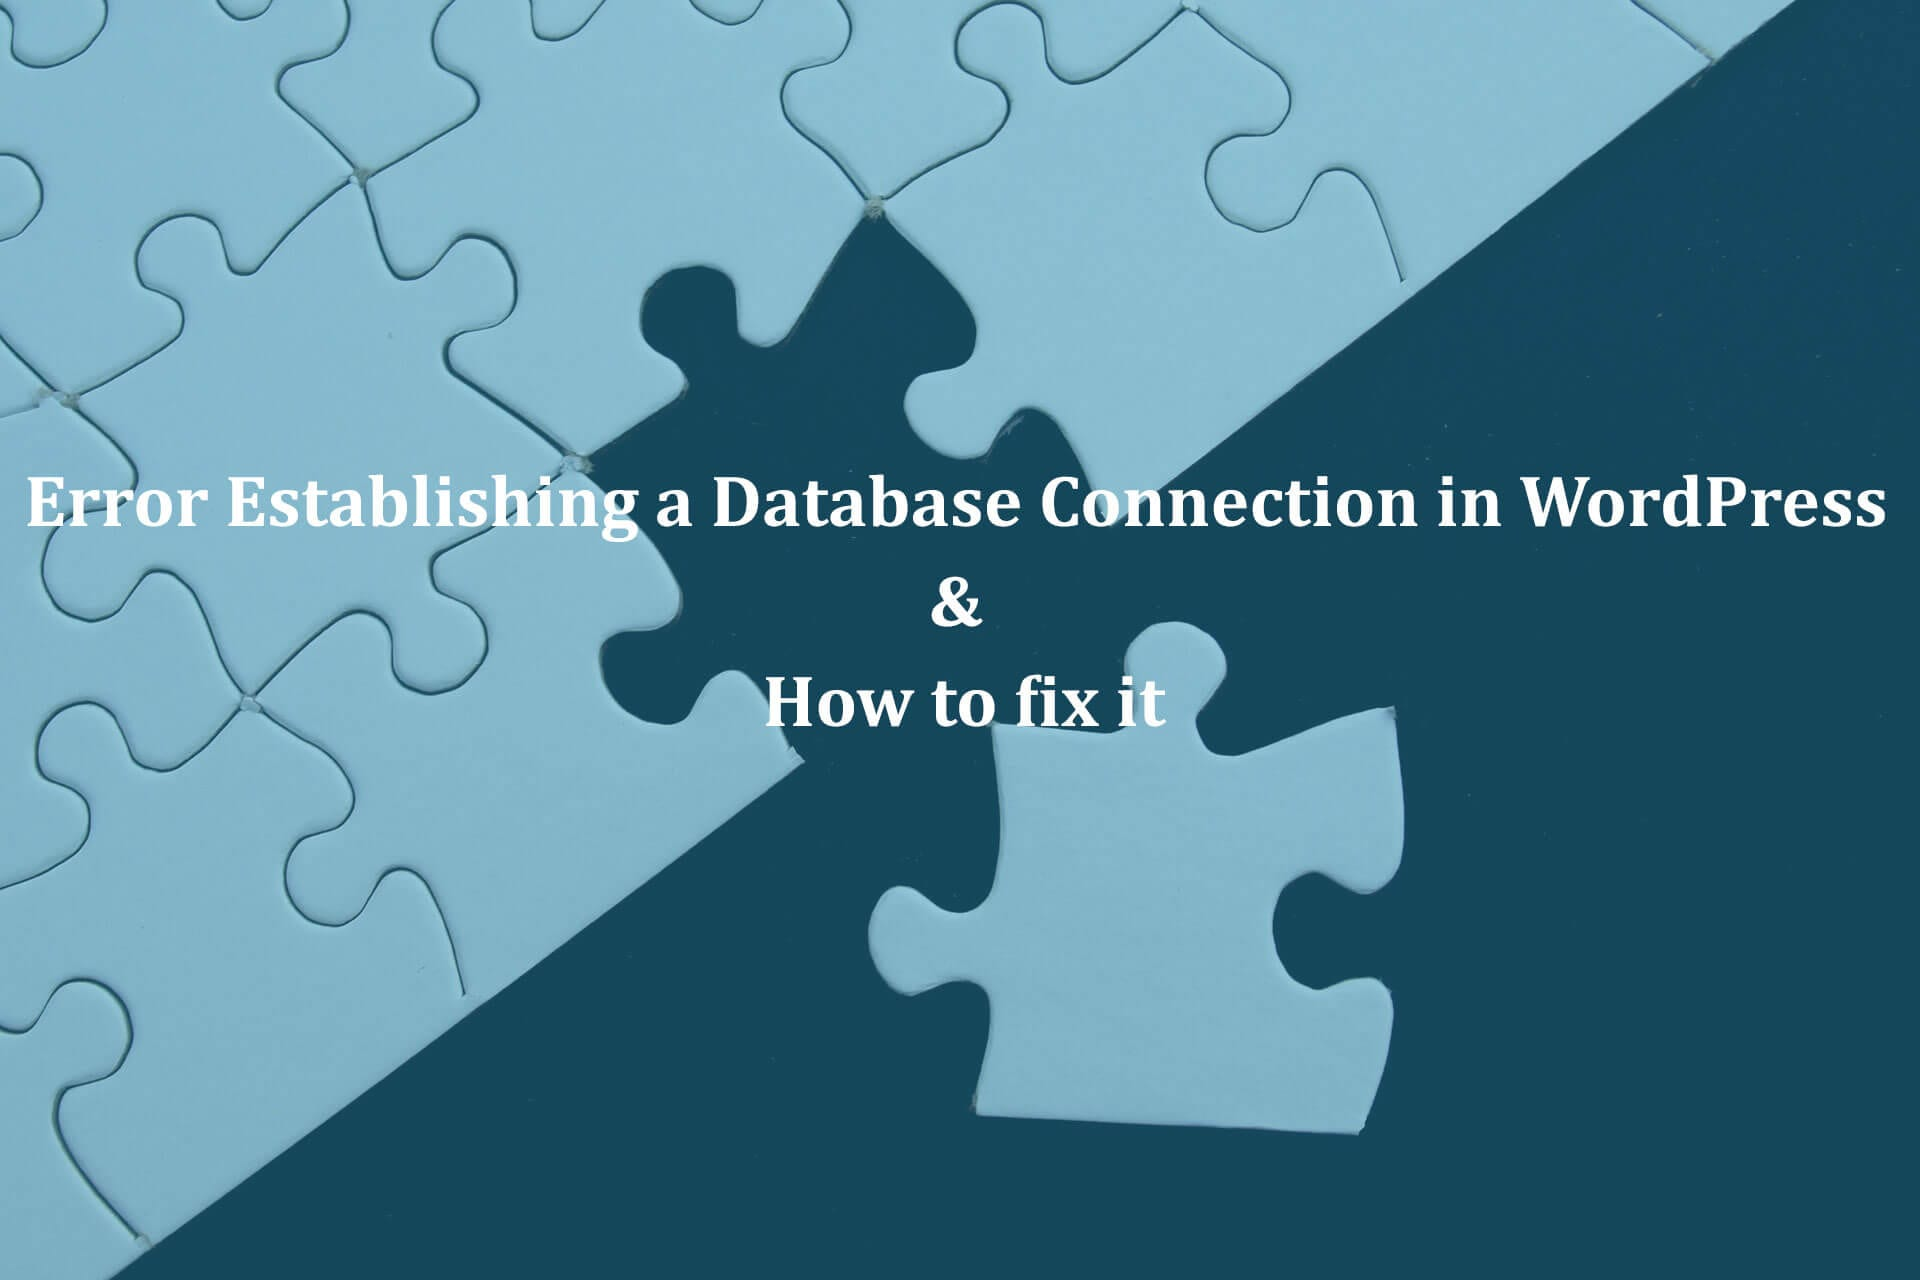 Error-Establishing-a-Database-Connection-in-WordPress-How-to-fix-it